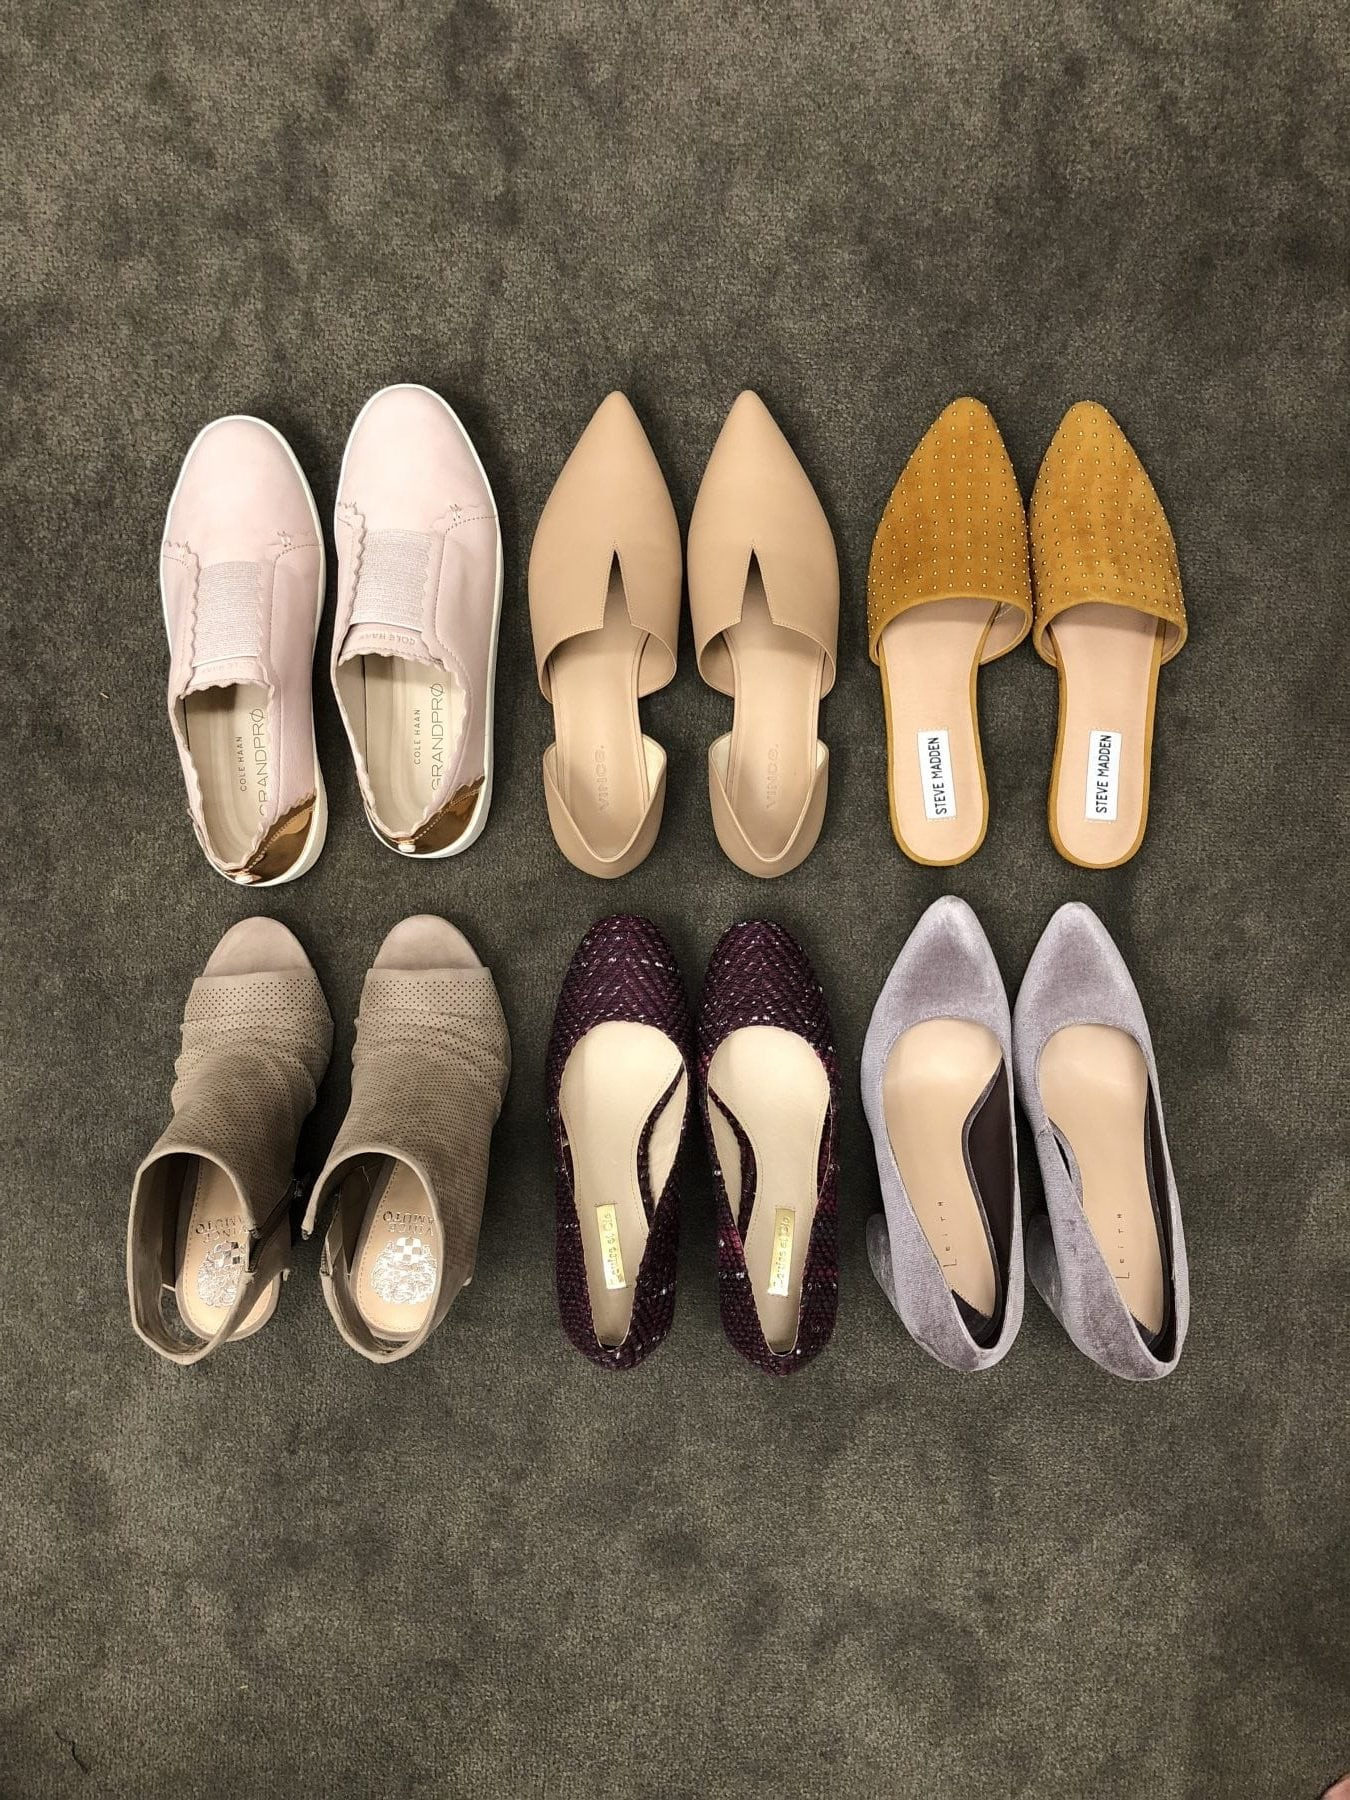 Nordstrom Anniversary Sale Outfits: Shoes From Nordstrom